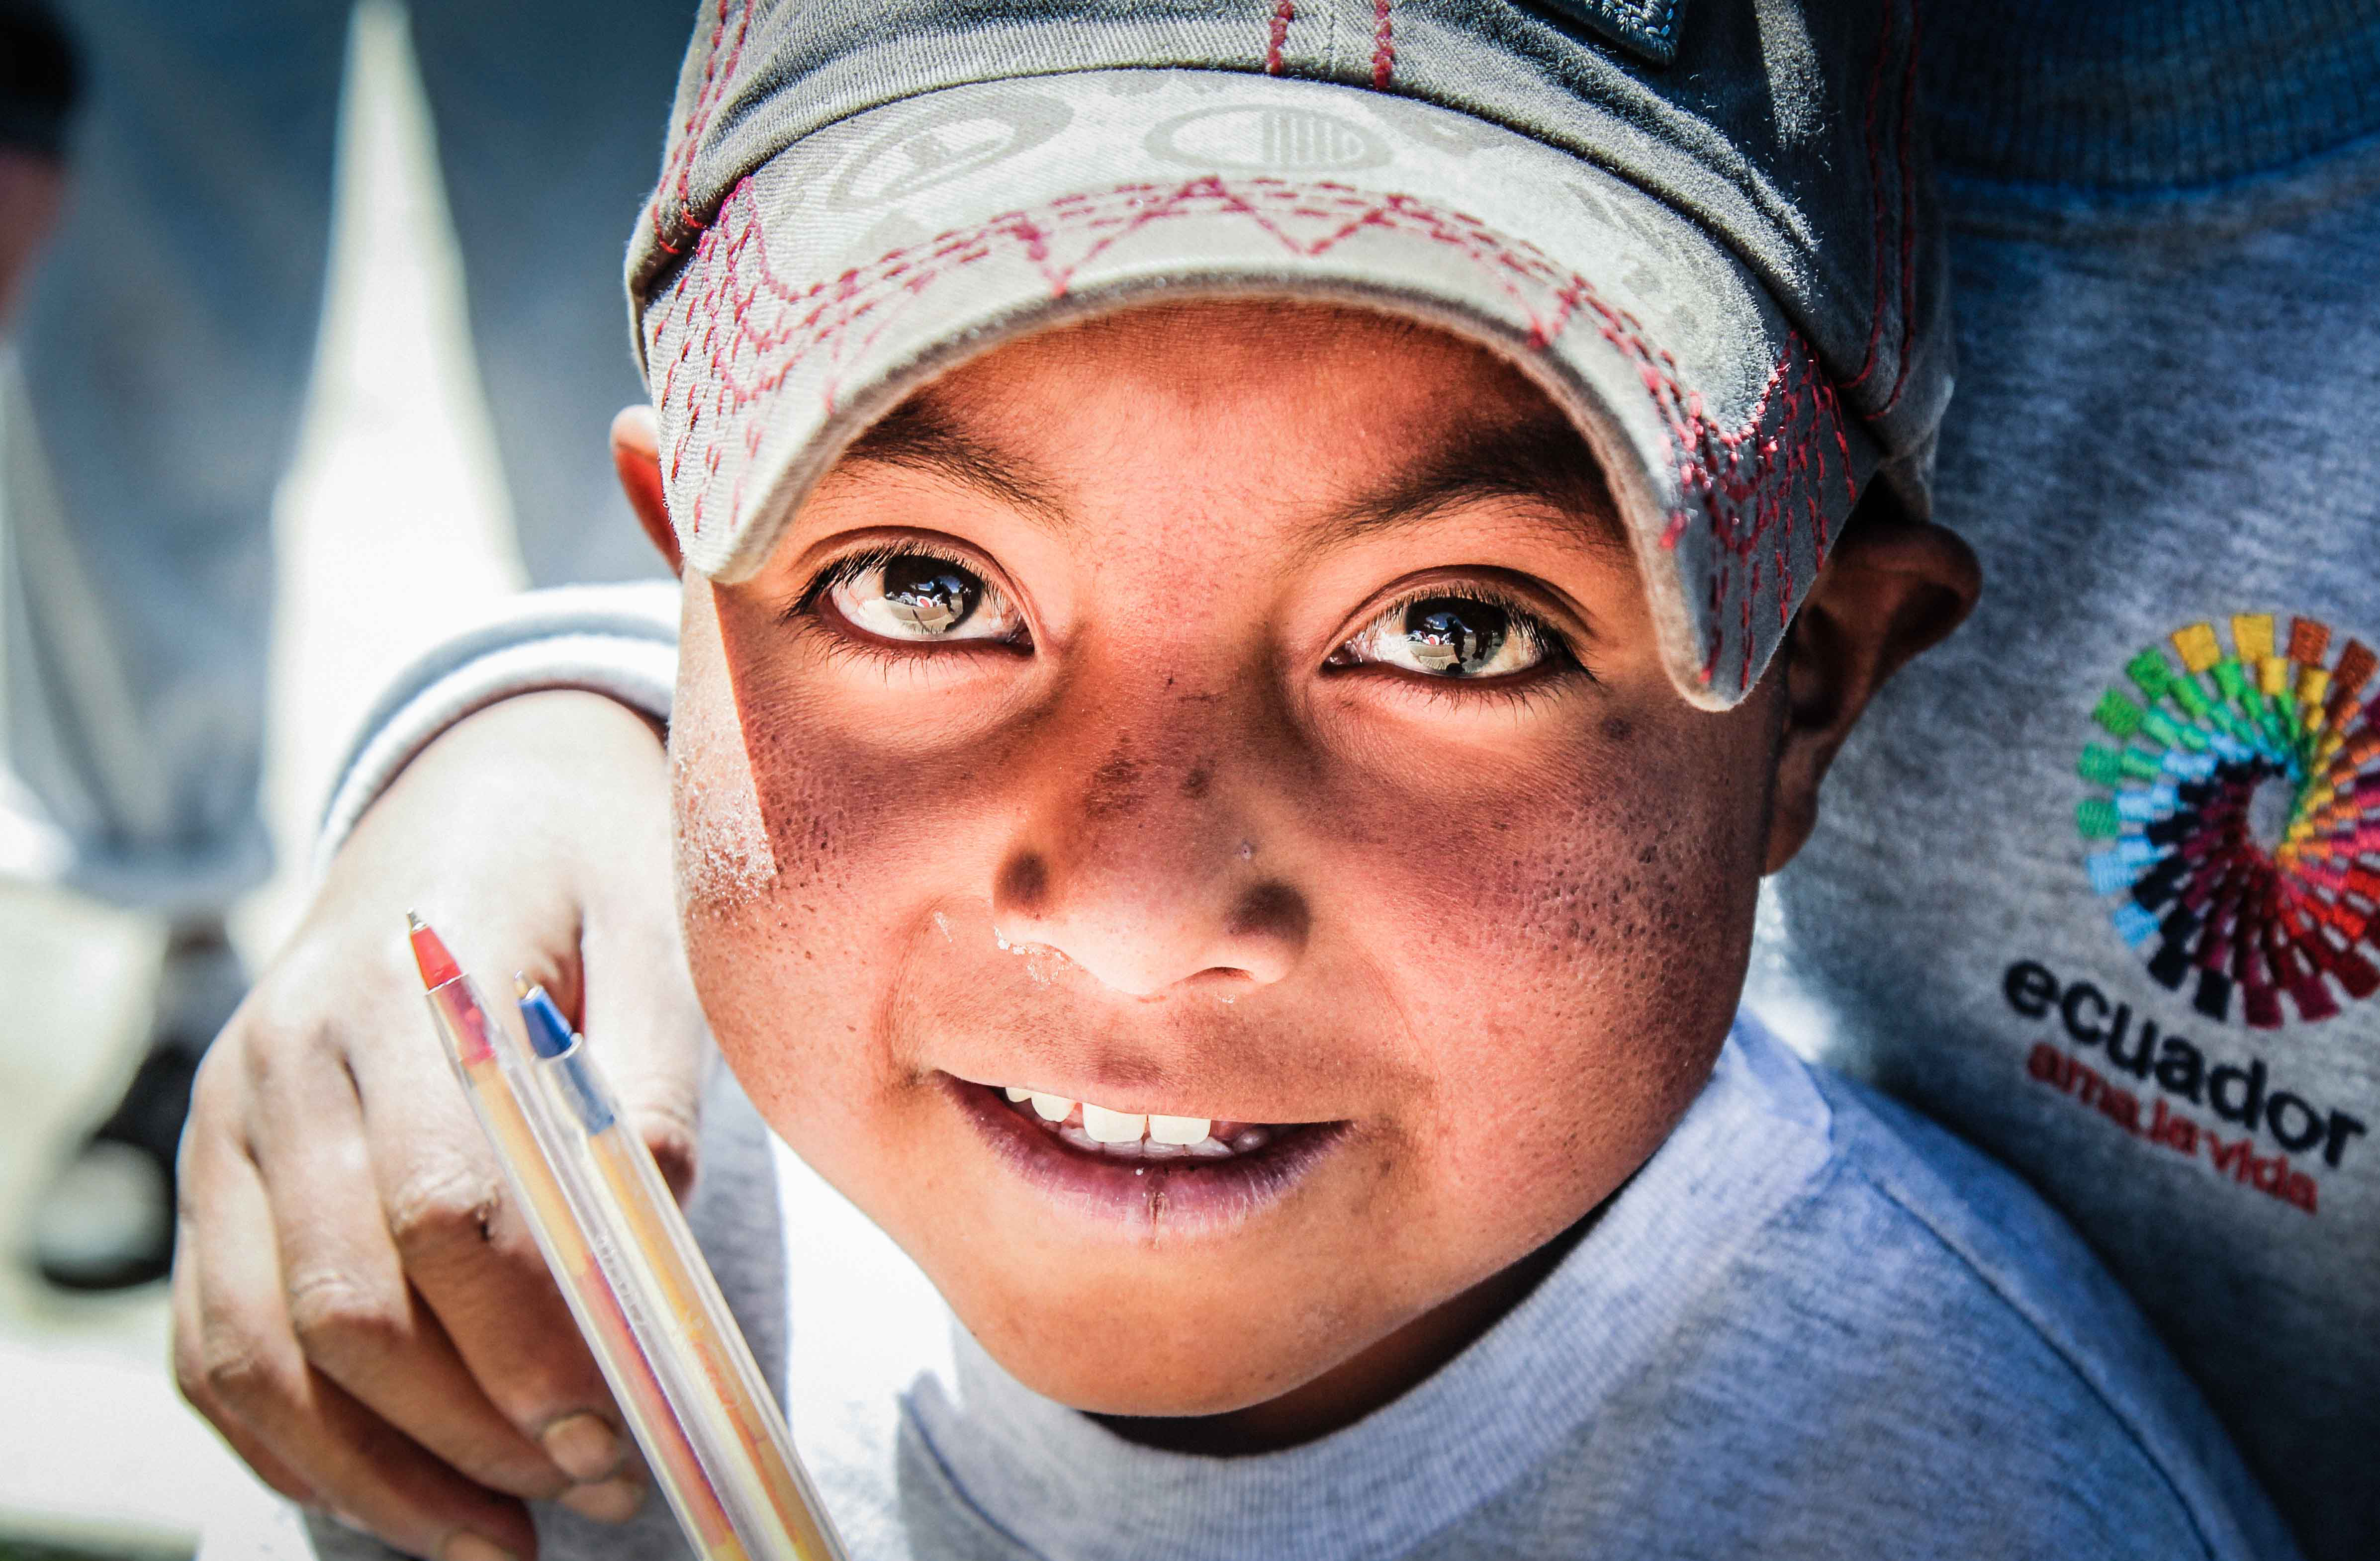 child-with-pens